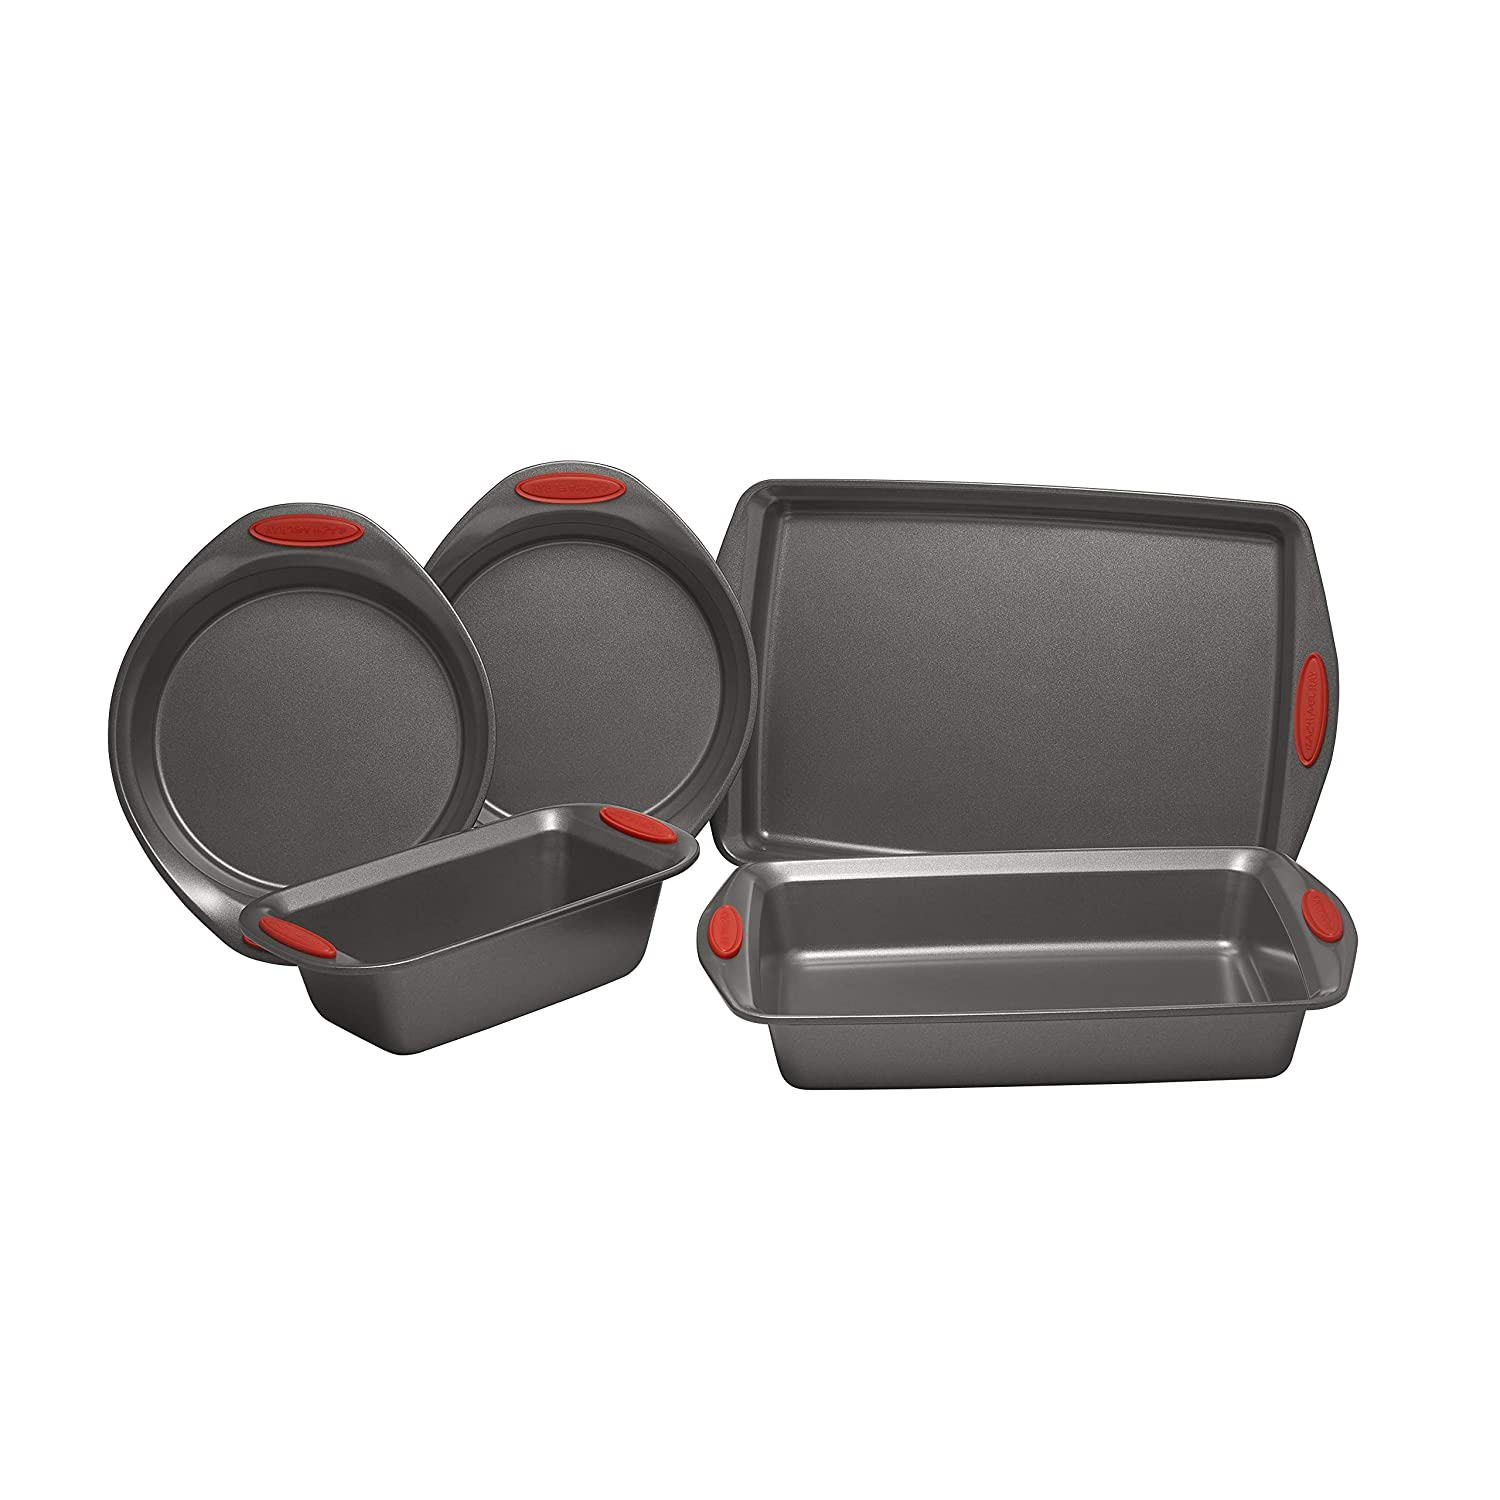 Rachael Ray Yum-o! Nonstick Oven Lovin' Bakeware Set, Gray with Marine Blue Handles. 5-Piece Set 47021